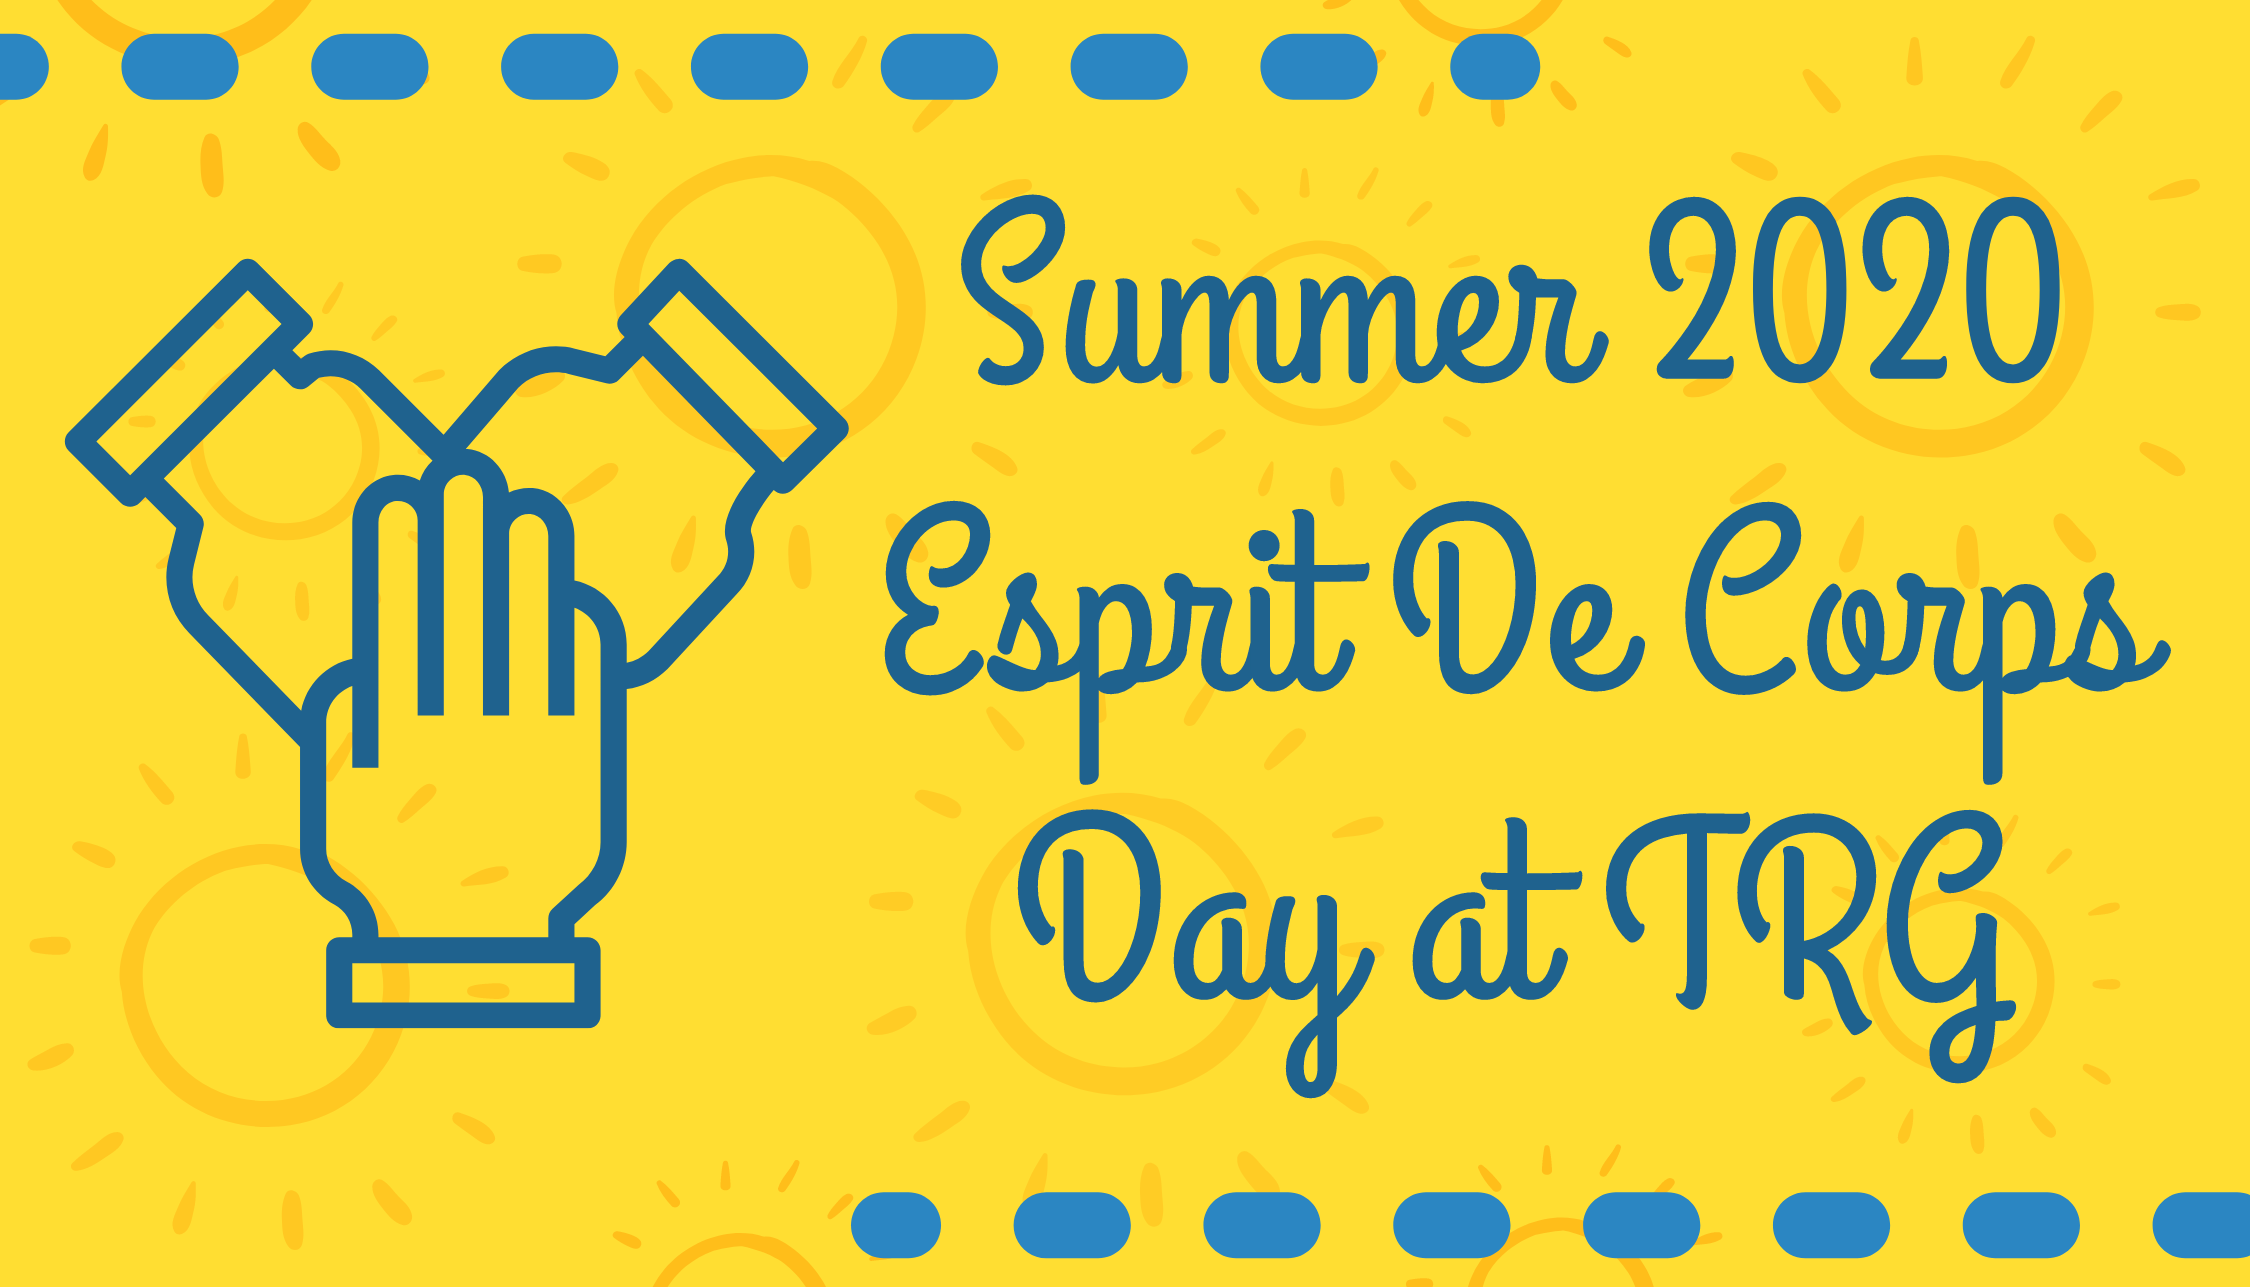 Summer 2020 Esprit De Corps Day at TRG